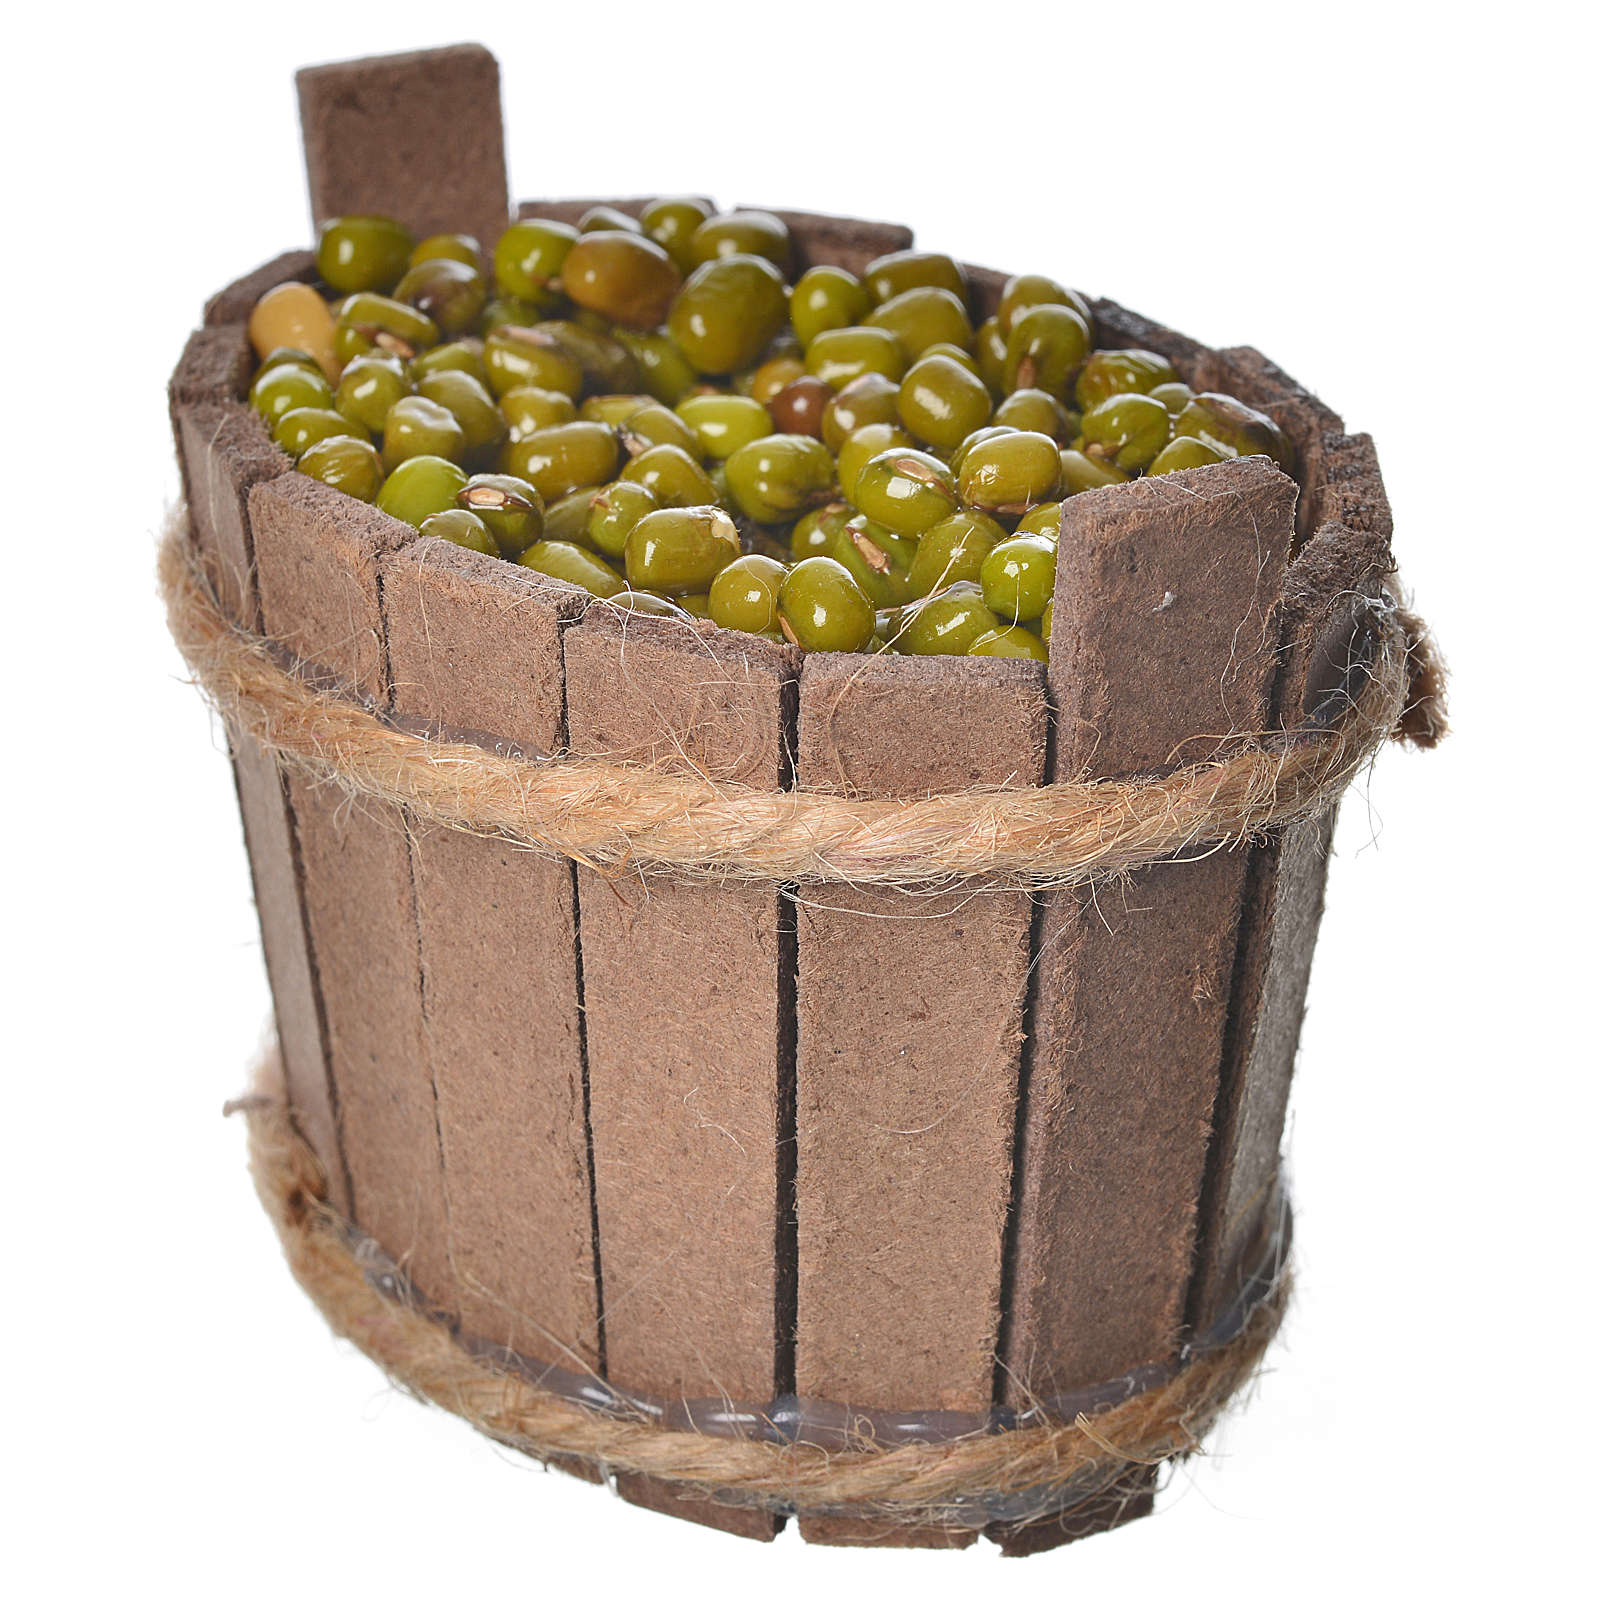 Tub, made of wood with olives 4